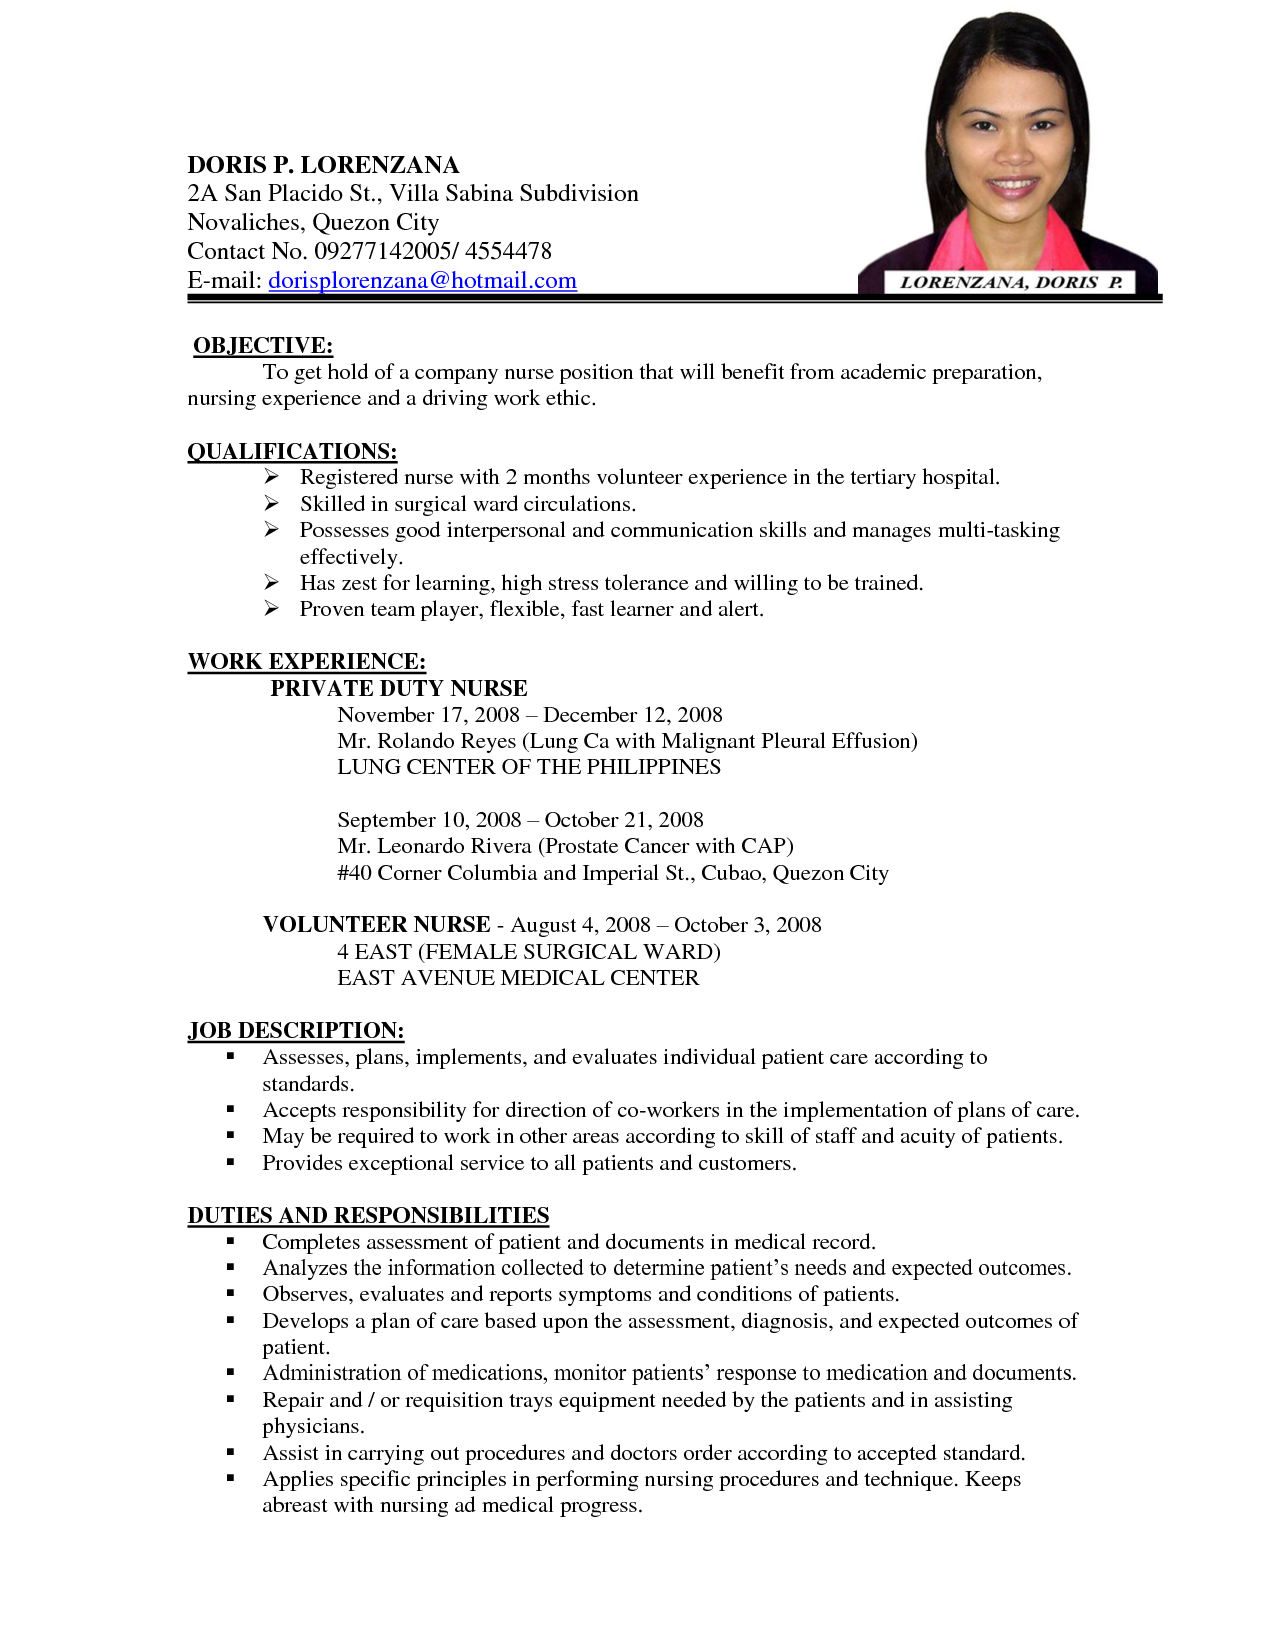 nursing curriculum vitae examples - Google Search | tt | Pinterest ...